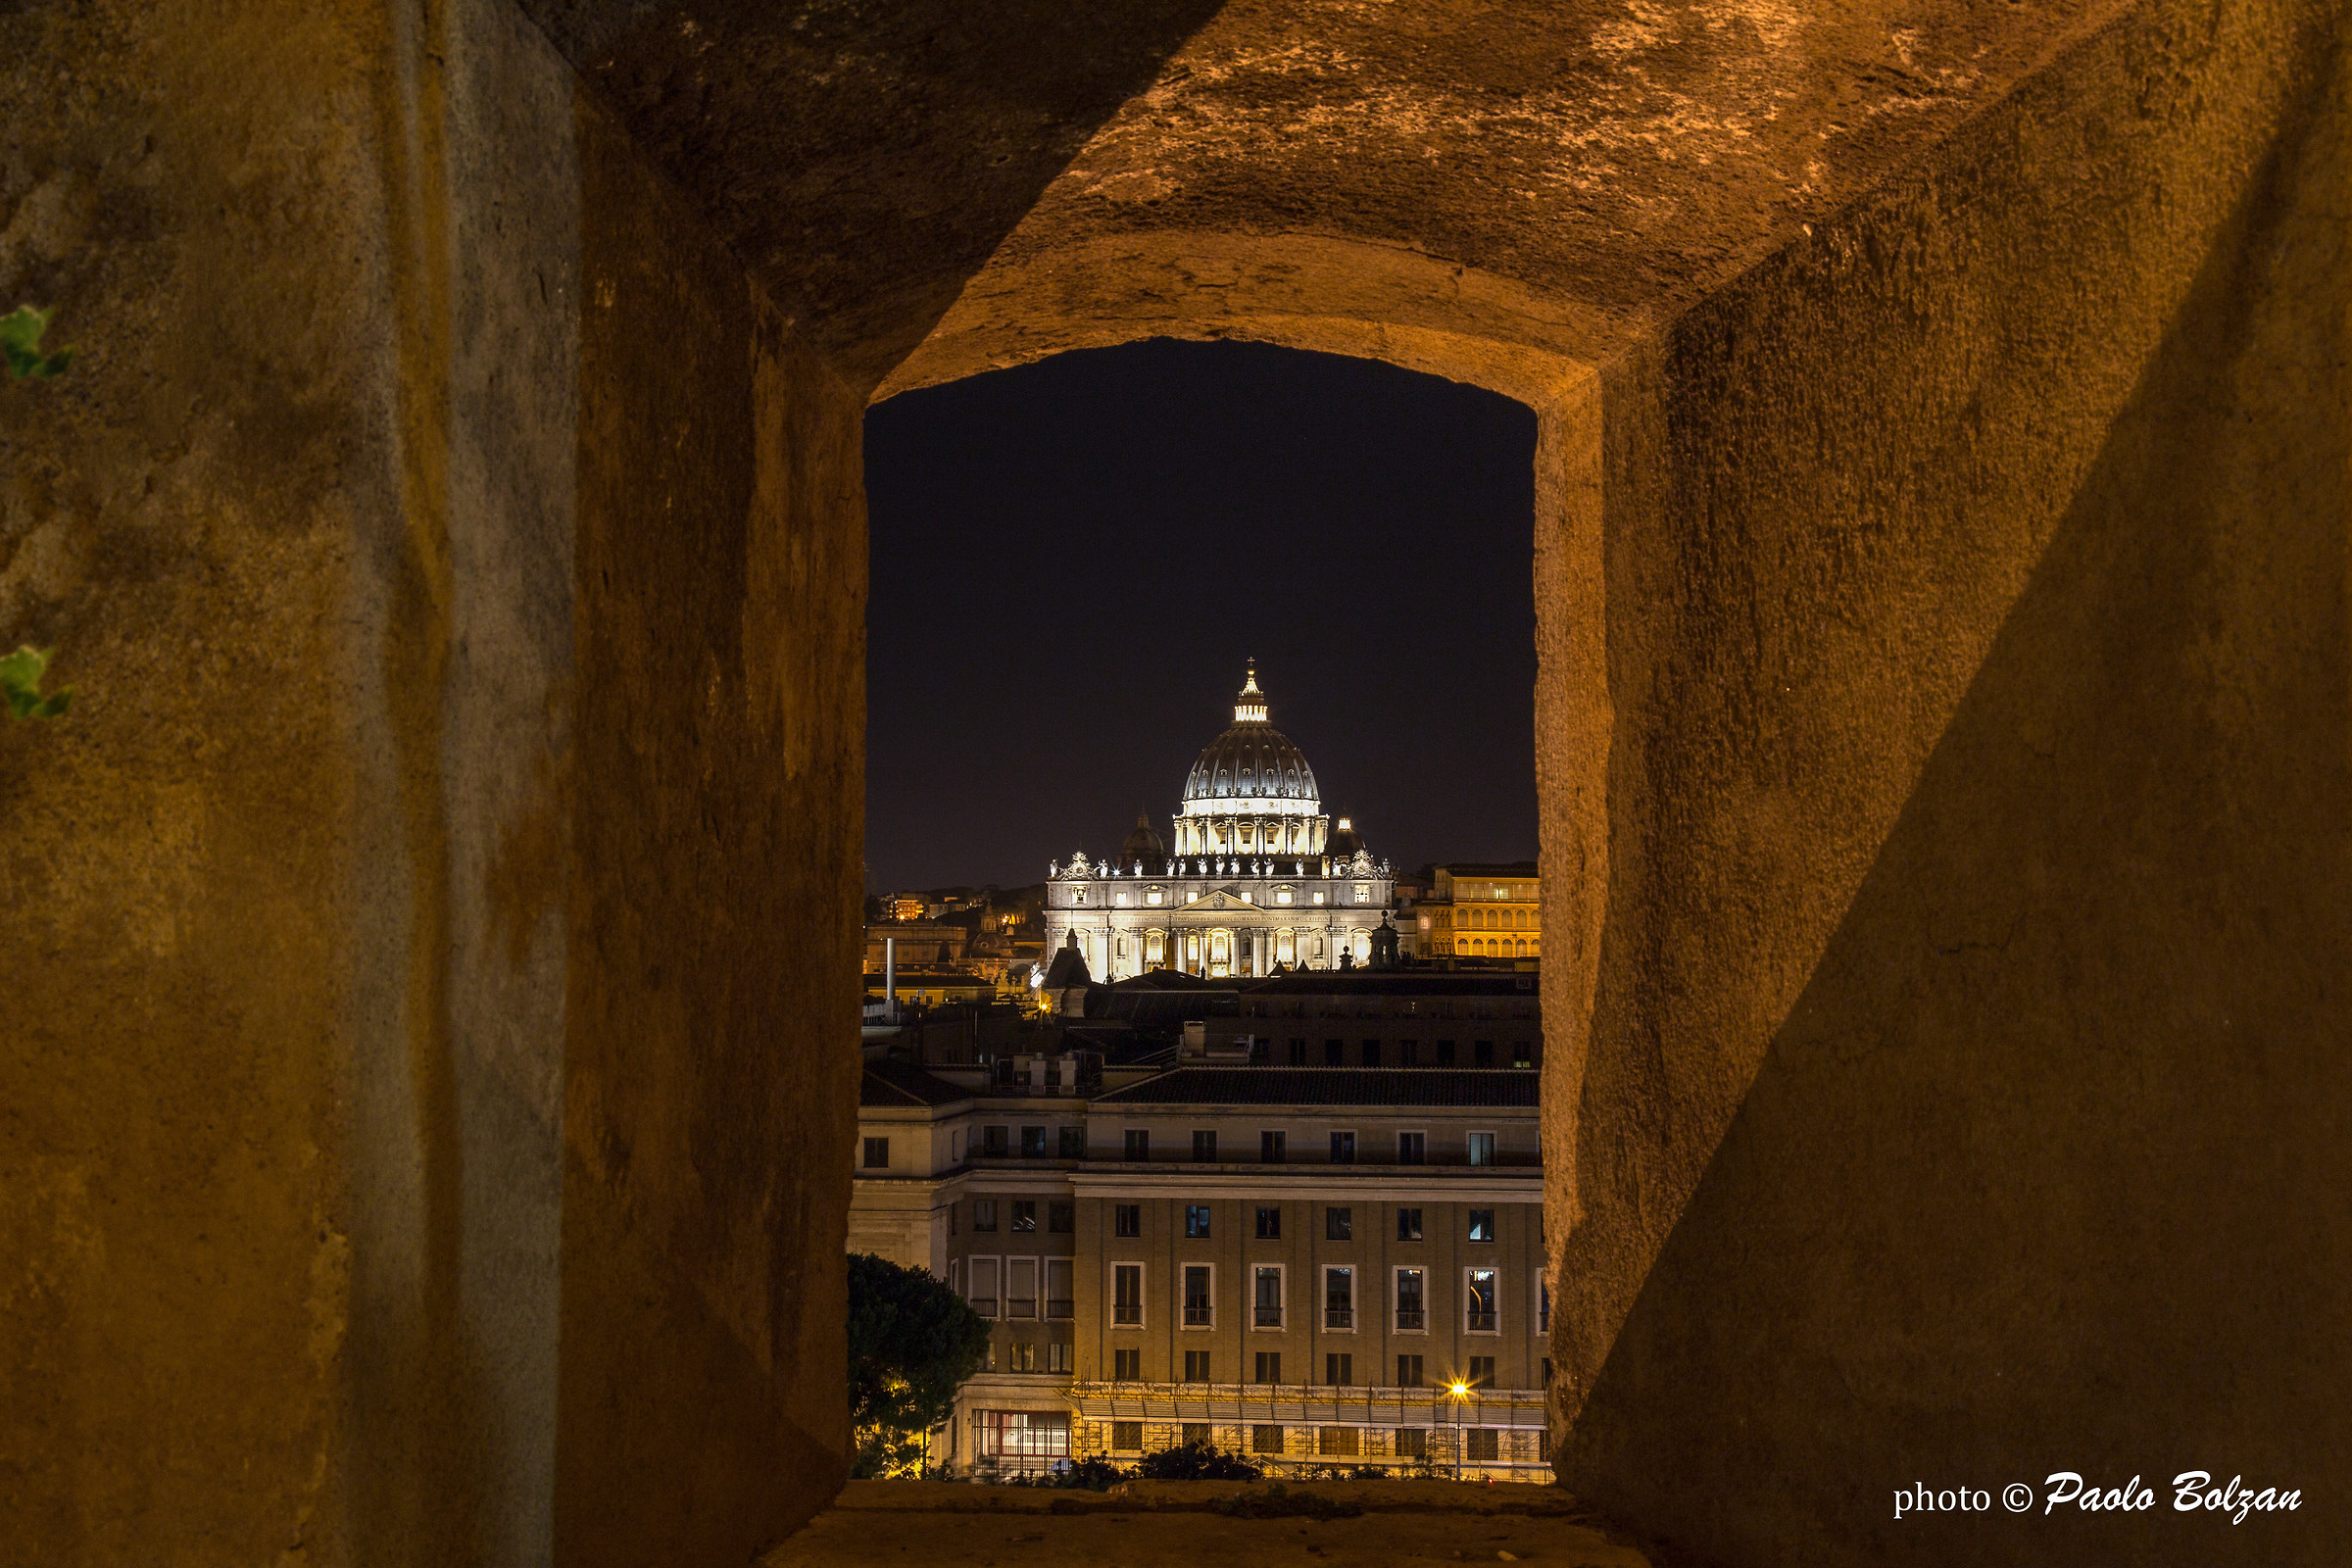 From the window of Castel Sant'Angelo...